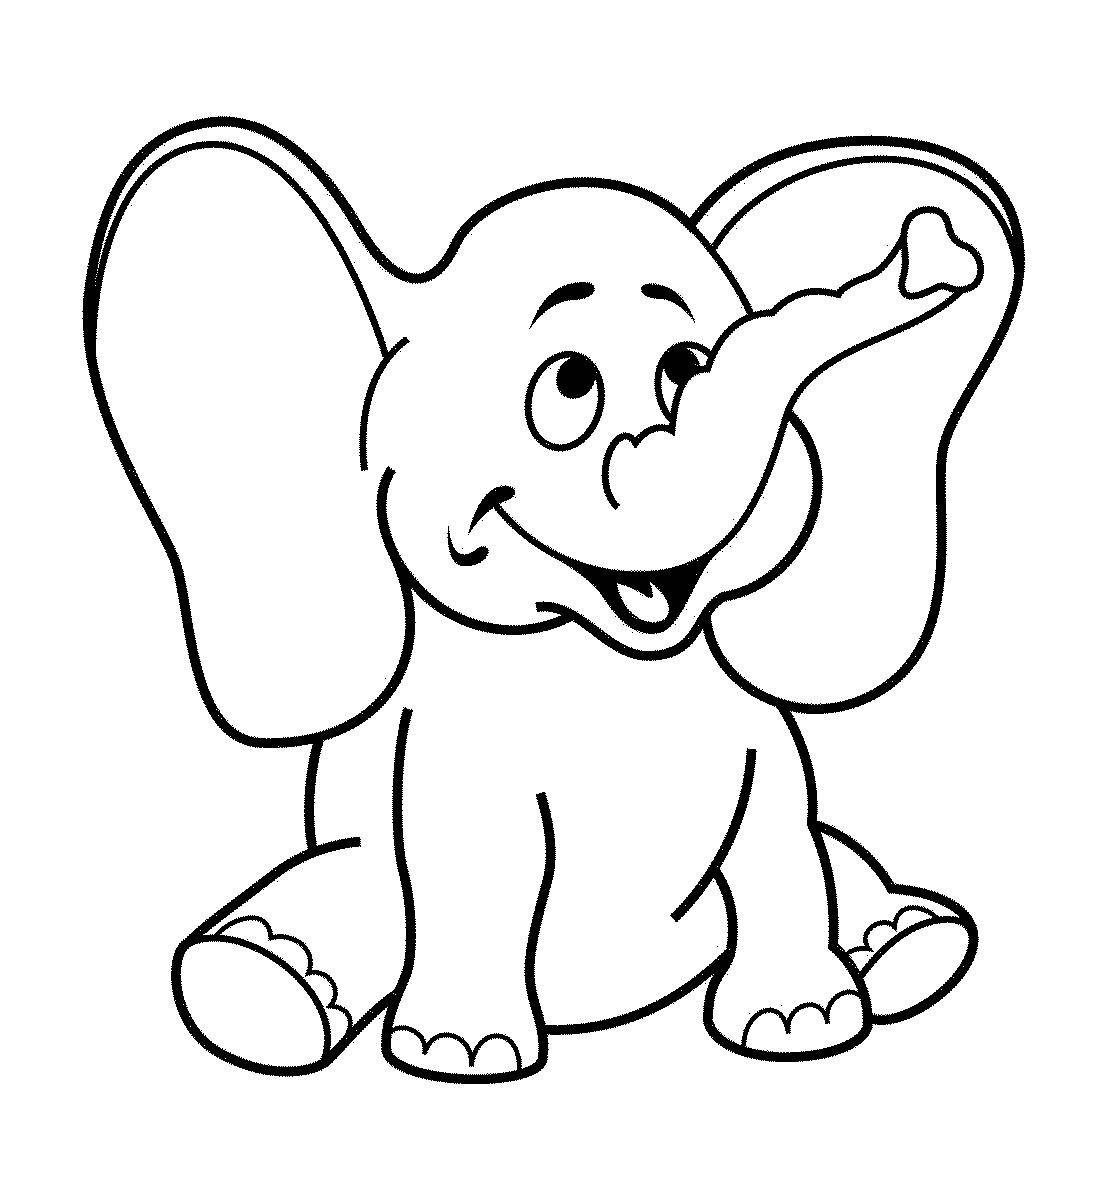 Dibujos de elefantes tiernos para colorear for Christmas coloring pages for 9 year olds